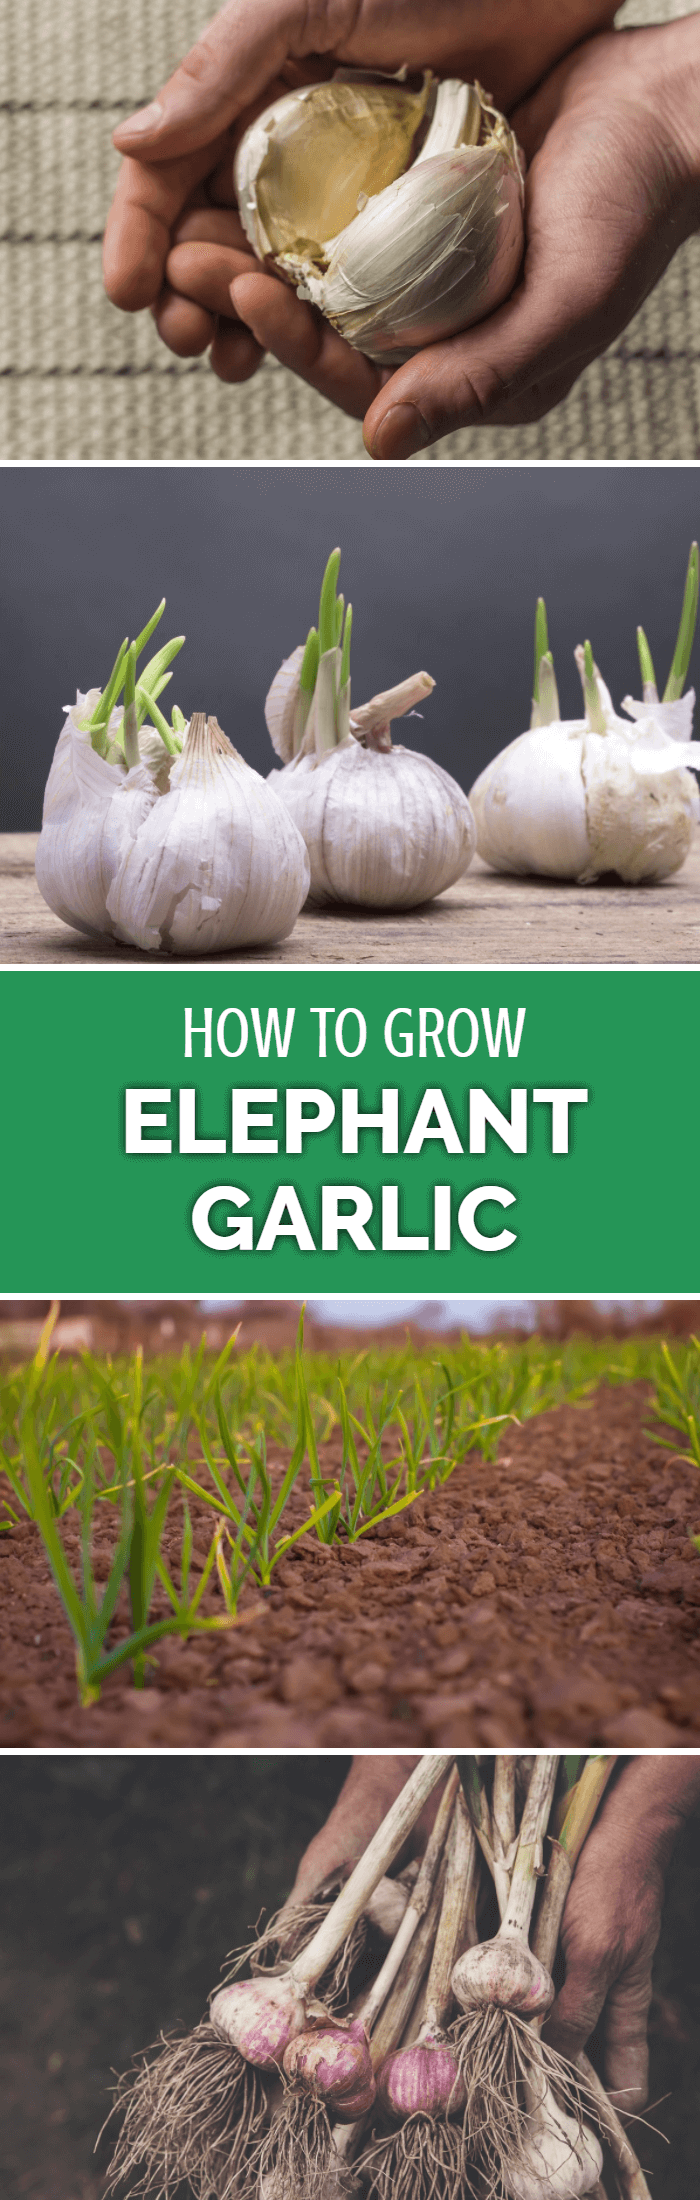 Learn how to grow elephant garlic - possibly one of the most exciting yet reliable vegetable crops for gardeners and homesteaders.